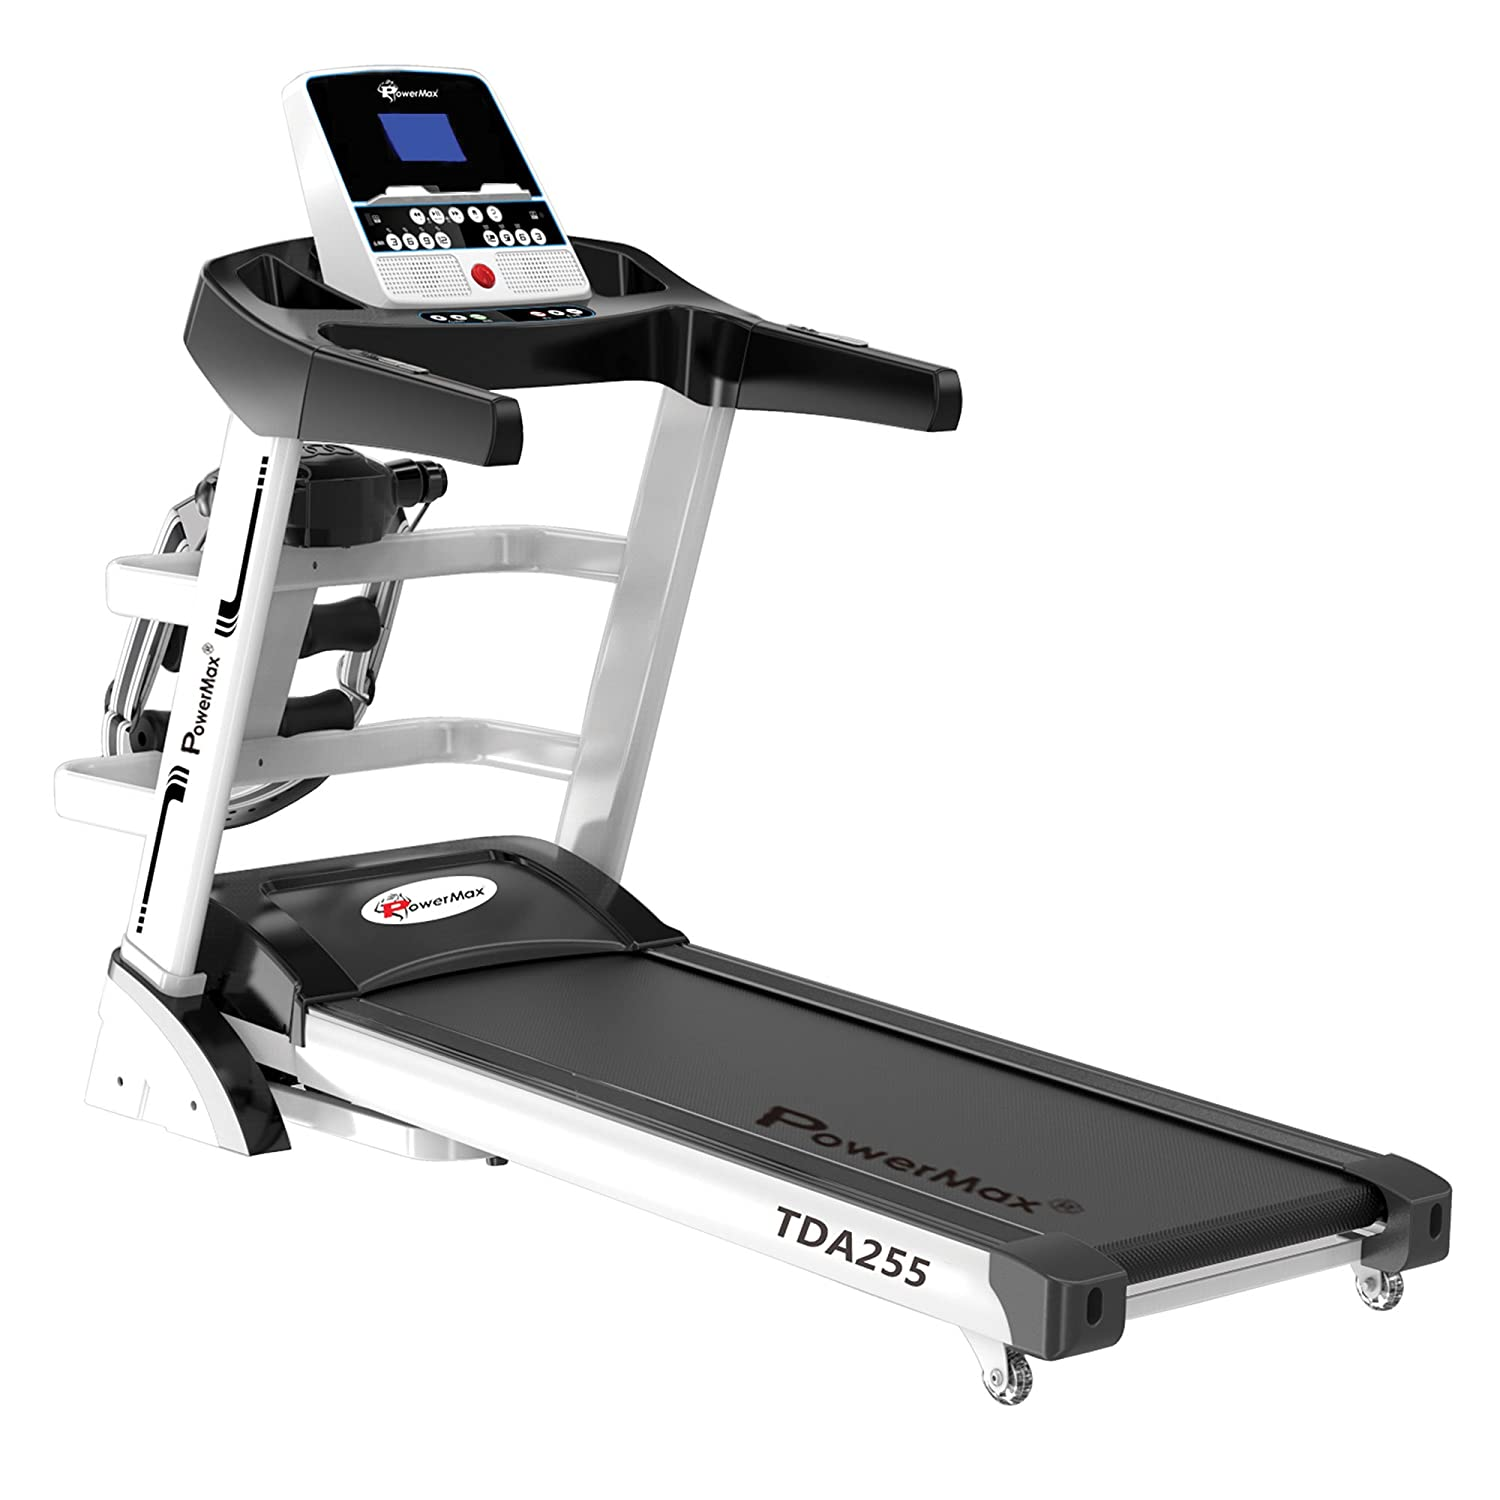 Powermax fitness treadmill reviews and price with model